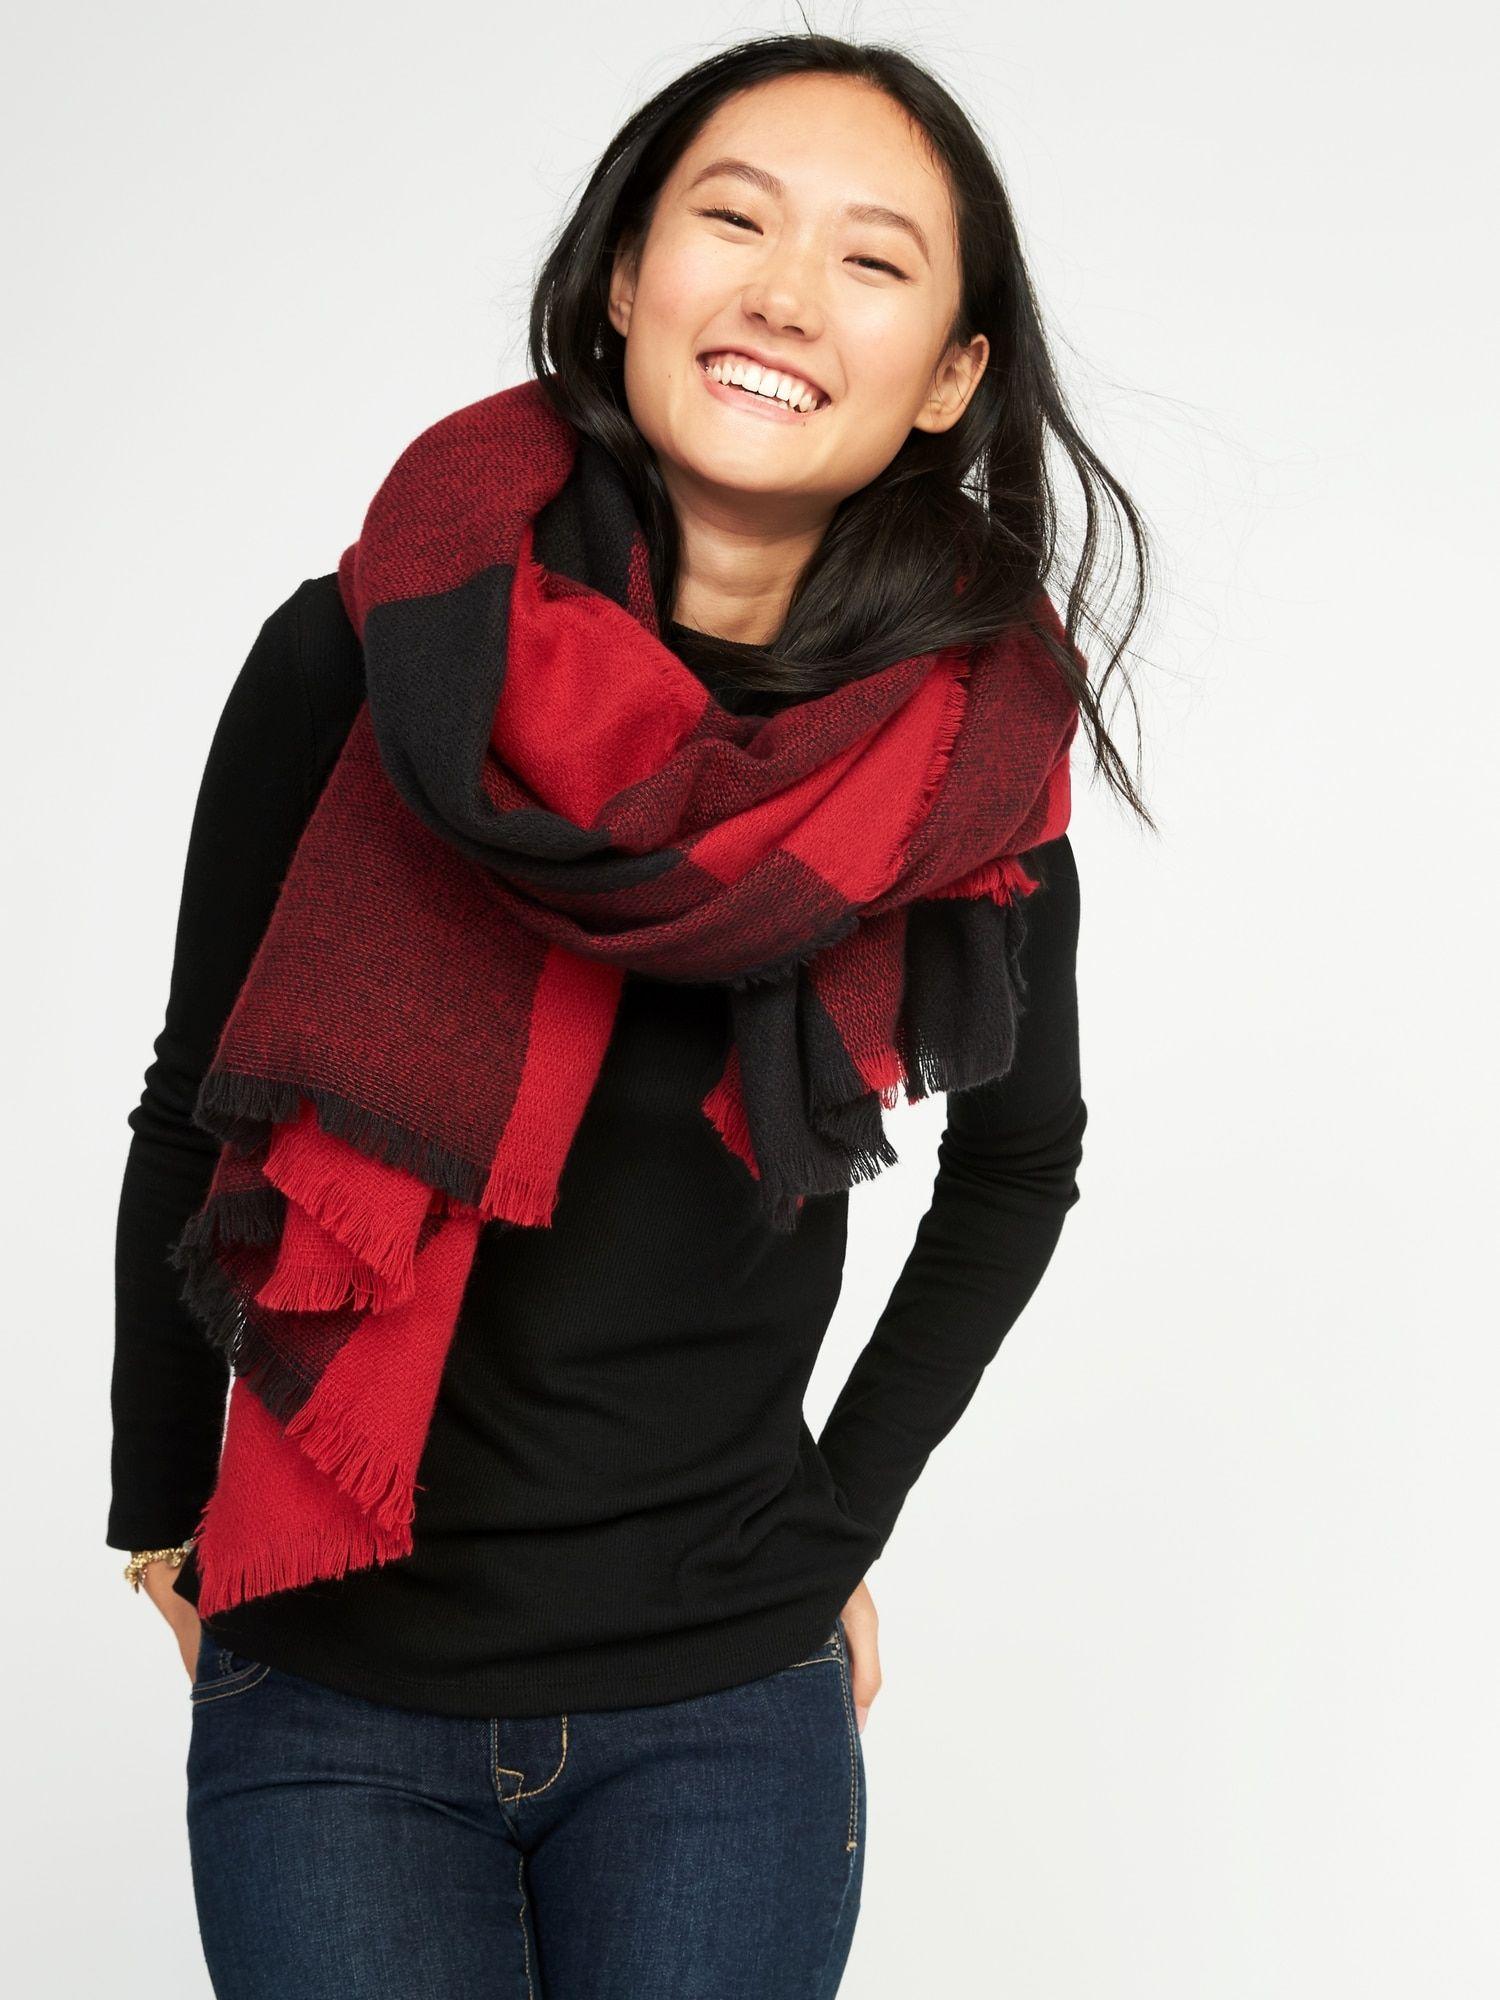 Flannel Blanket Scarf Old Navy Check Scarf Outfit Dress With